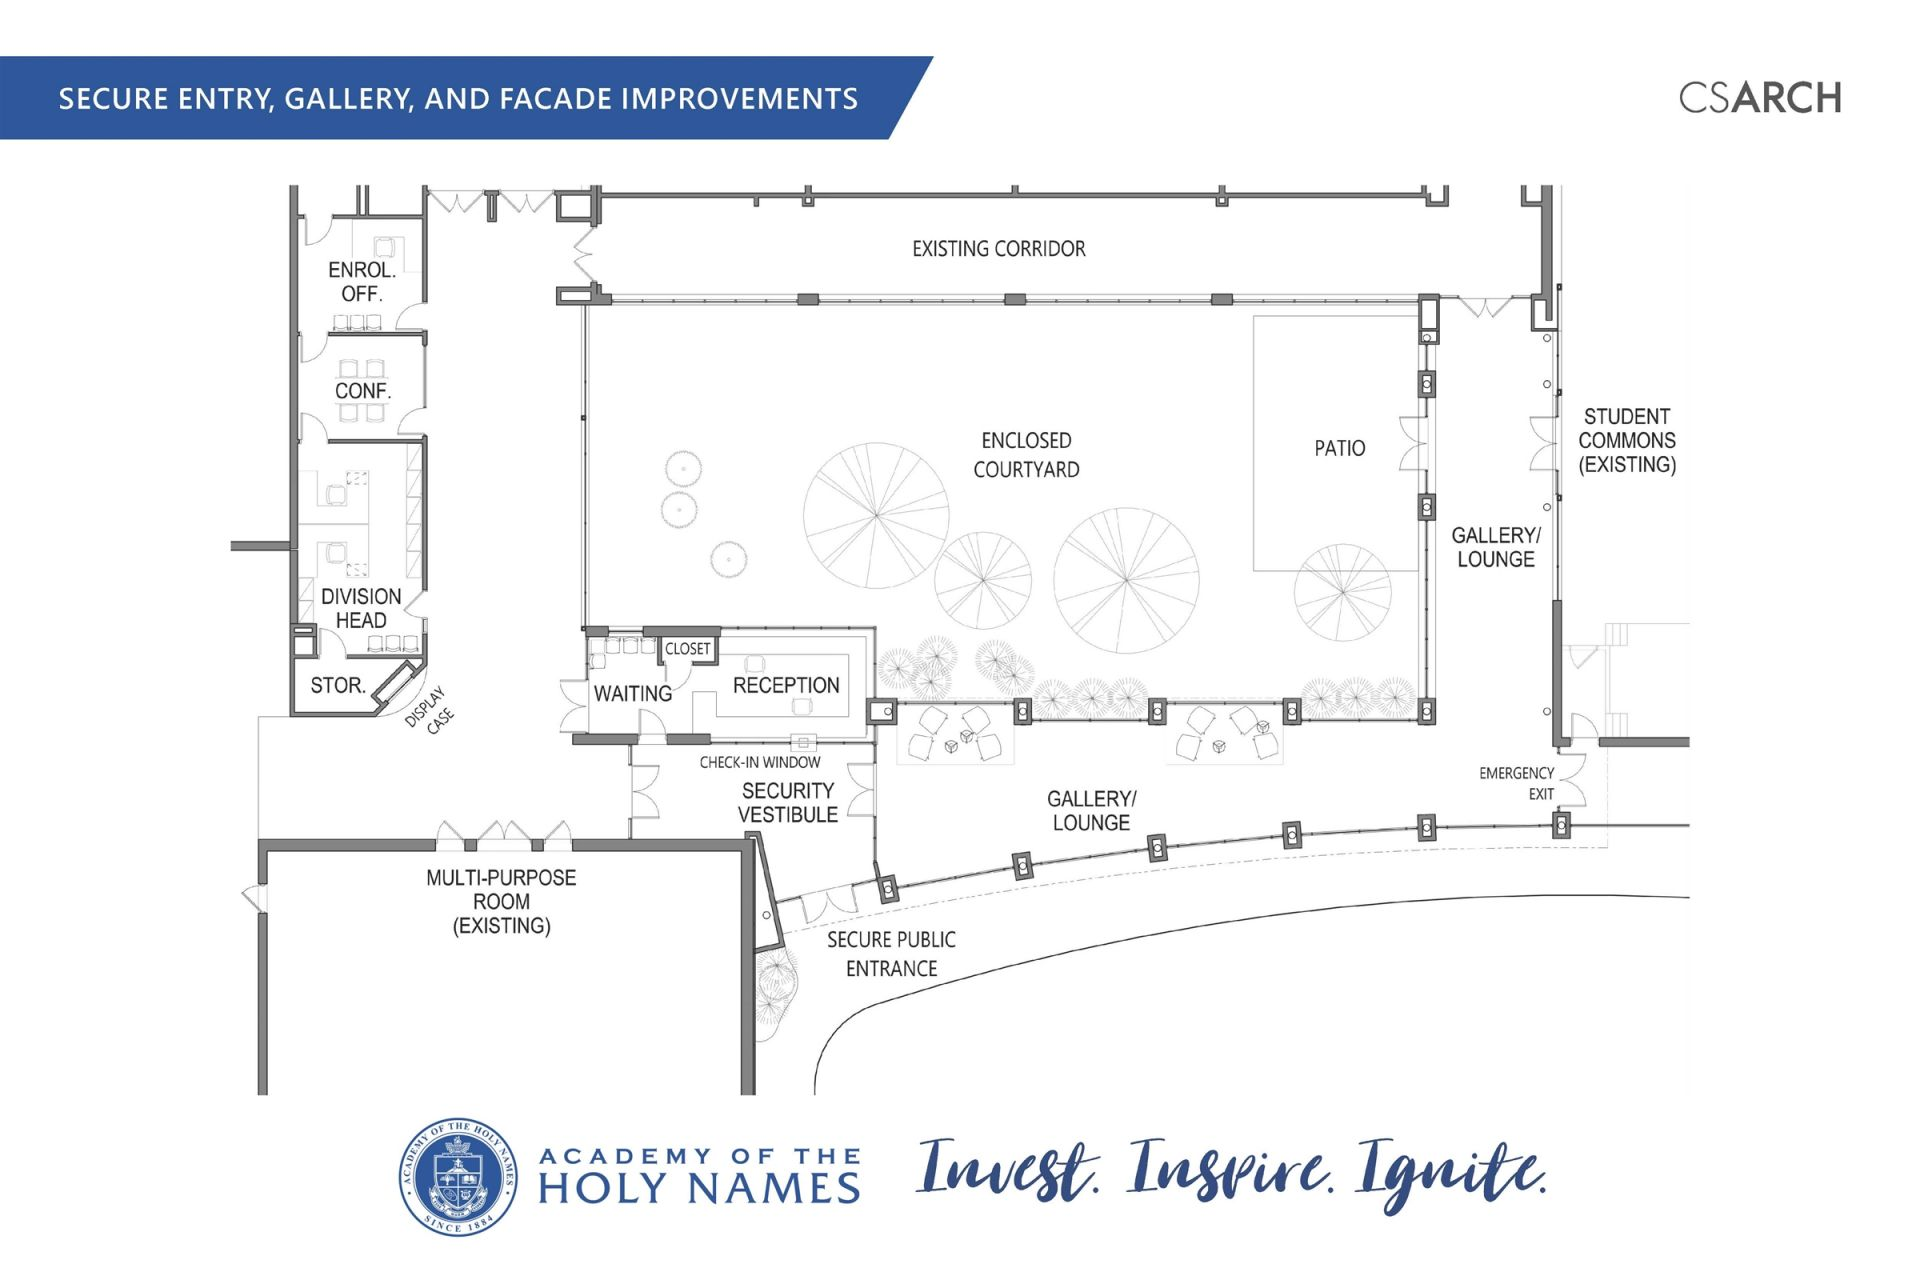 Blueprint of secure entry, gallery, and facade improvements.